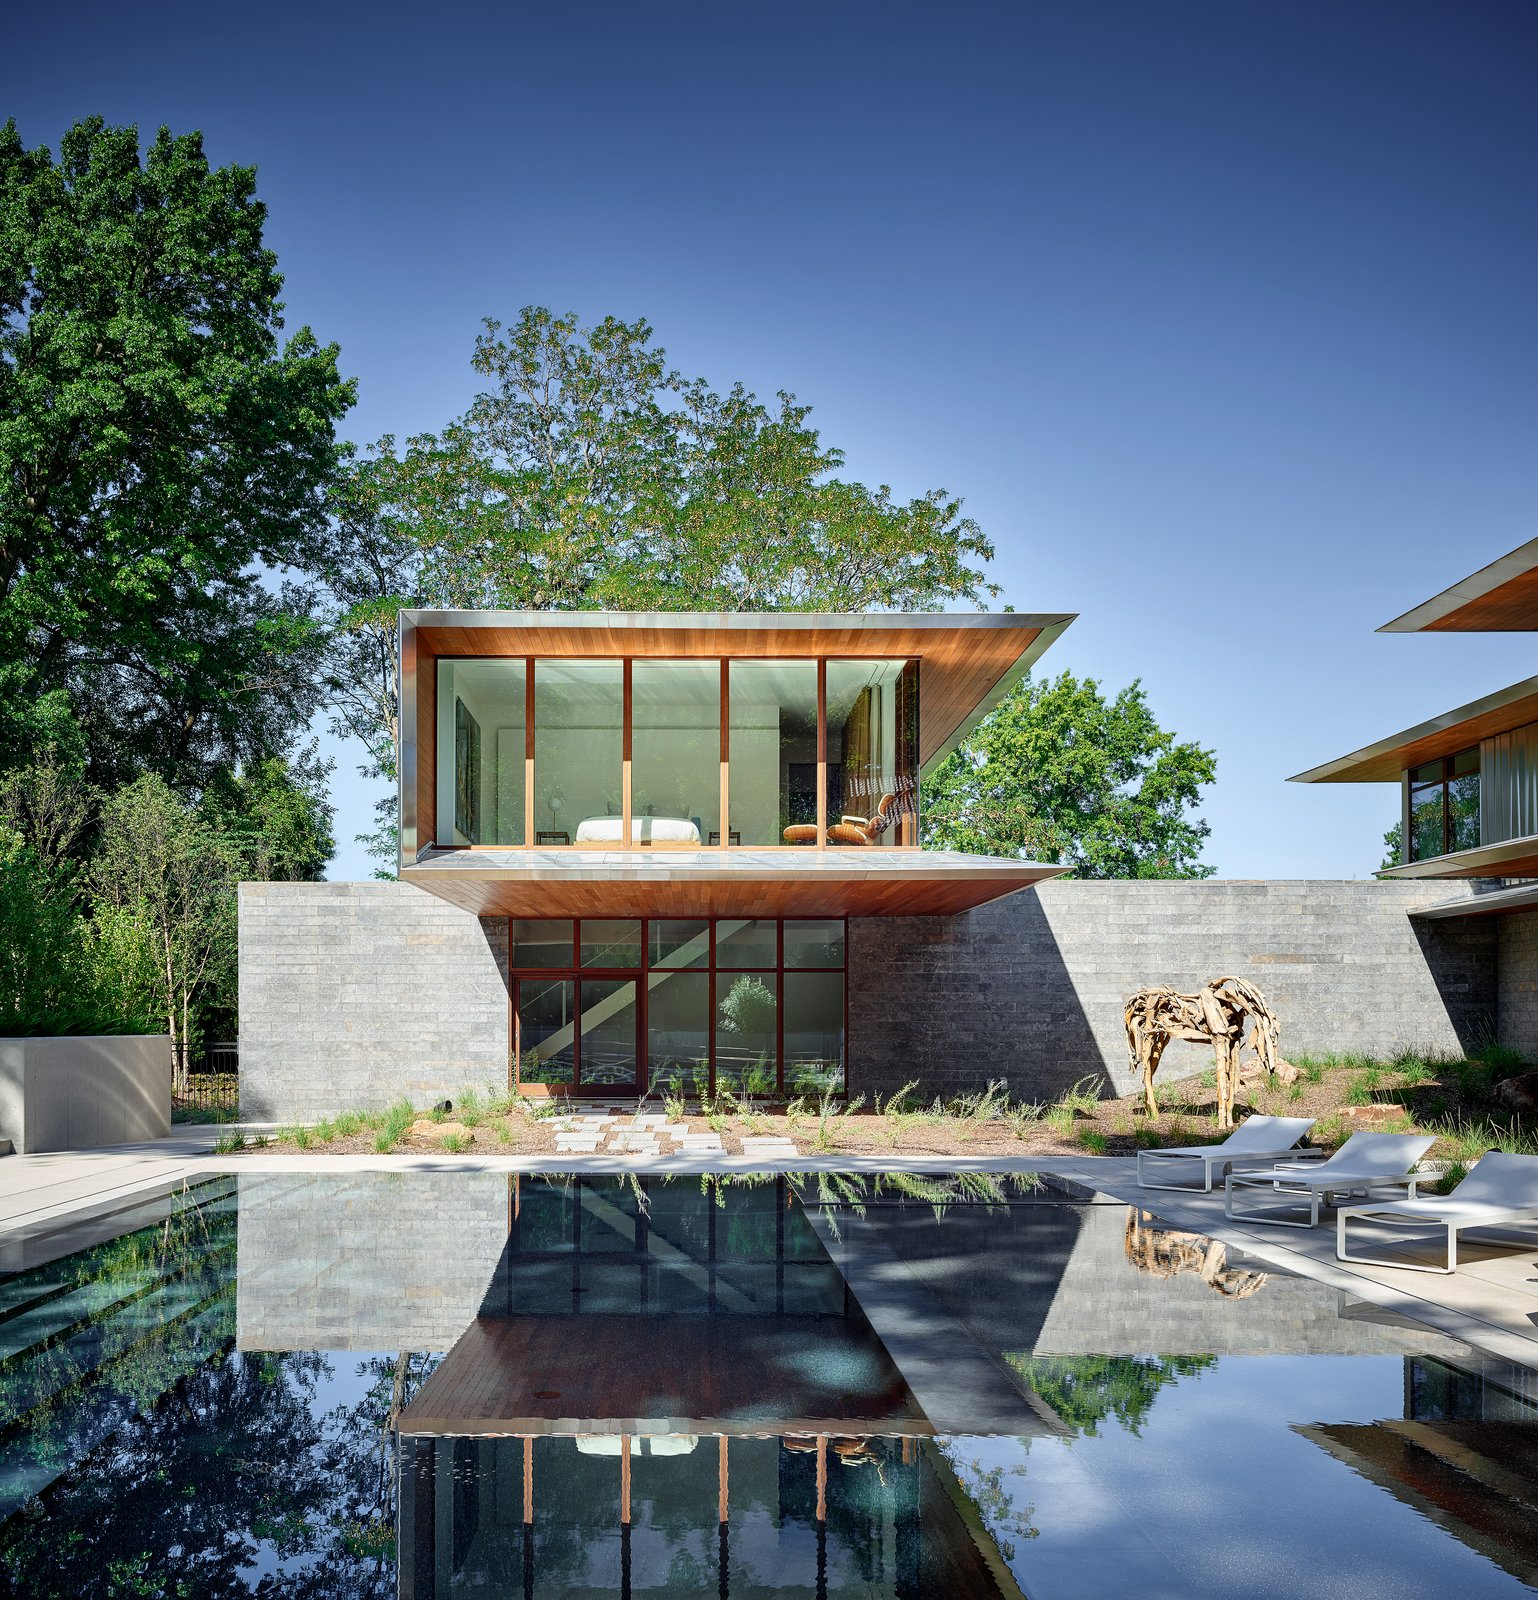 Outdoor, Stone Fences, Wall, Hardscapes, Trees, Swimming Pools, Tubs, Shower, Shrubs, Large Pools, Tubs, Shower, Back Yard, Concrete Patio, Porch, Deck, and Horizontal Fences, Wall One of the two guest suites dramatically cantilevers out over the pool.    Photo 5 of 23 in A Luminous, Eco-Friendly Abode Is Completed With its Own Modern Art Gallery from Artery House